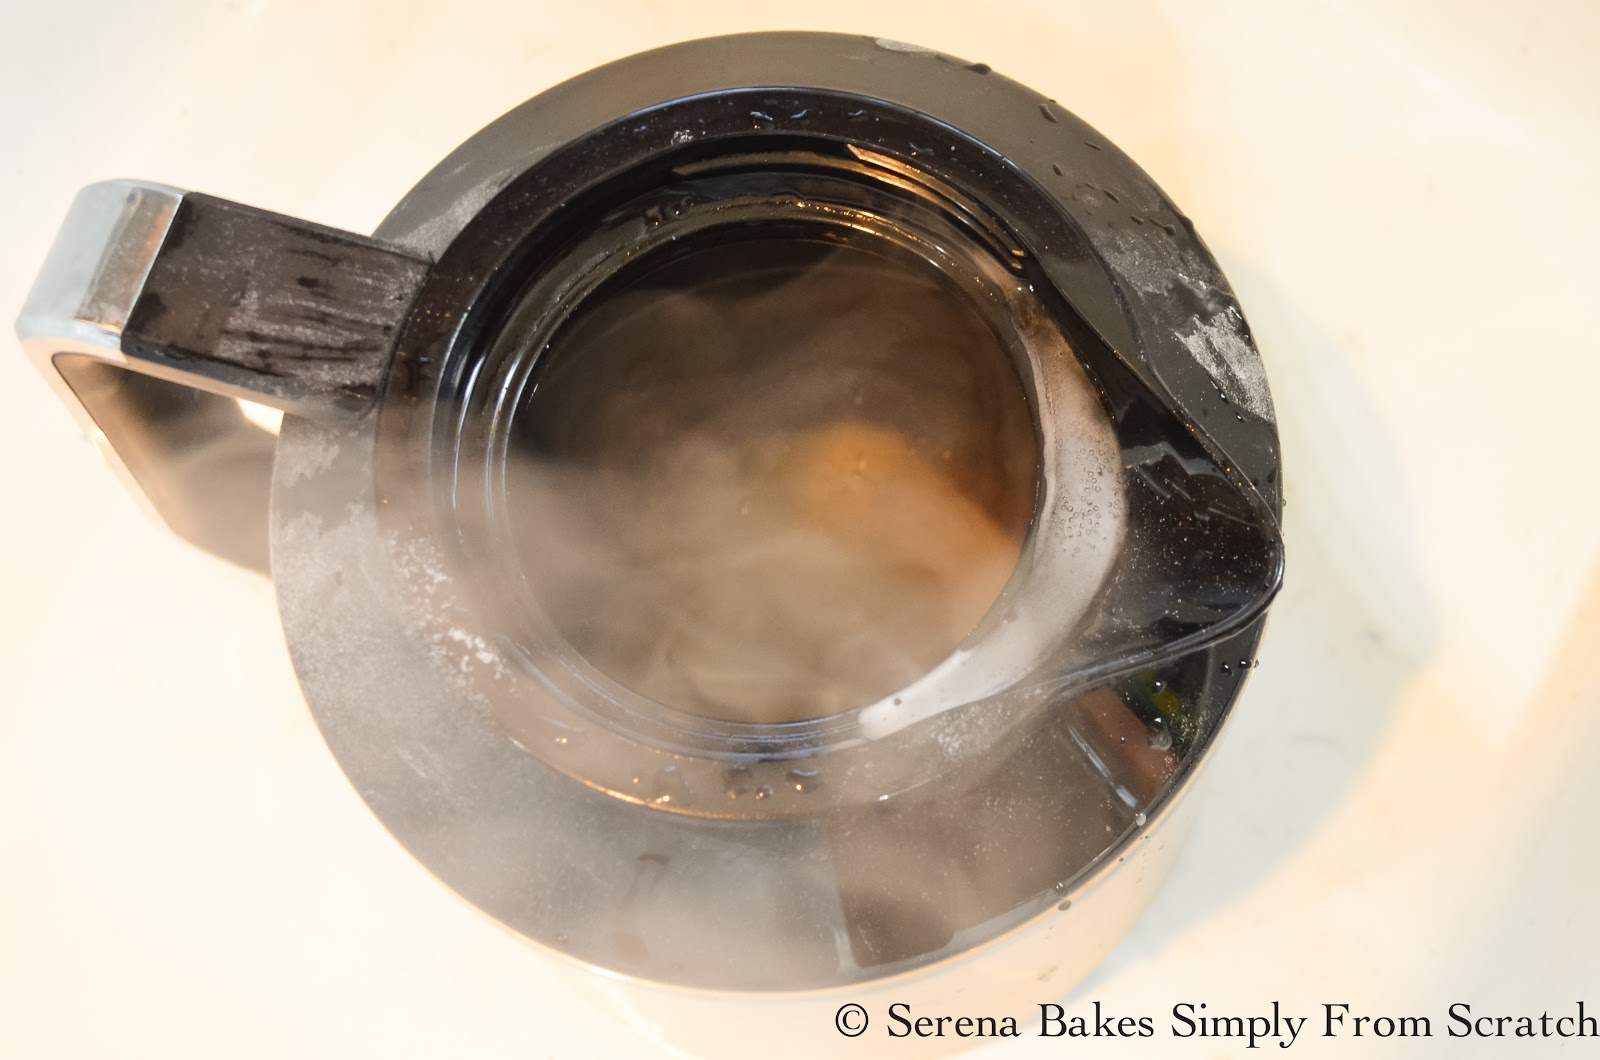 Coffee Pot Stains Cleaning : How To Clean A Stained Stainless Steel Coffee Pot - Serena Bakes Simply From Scratch